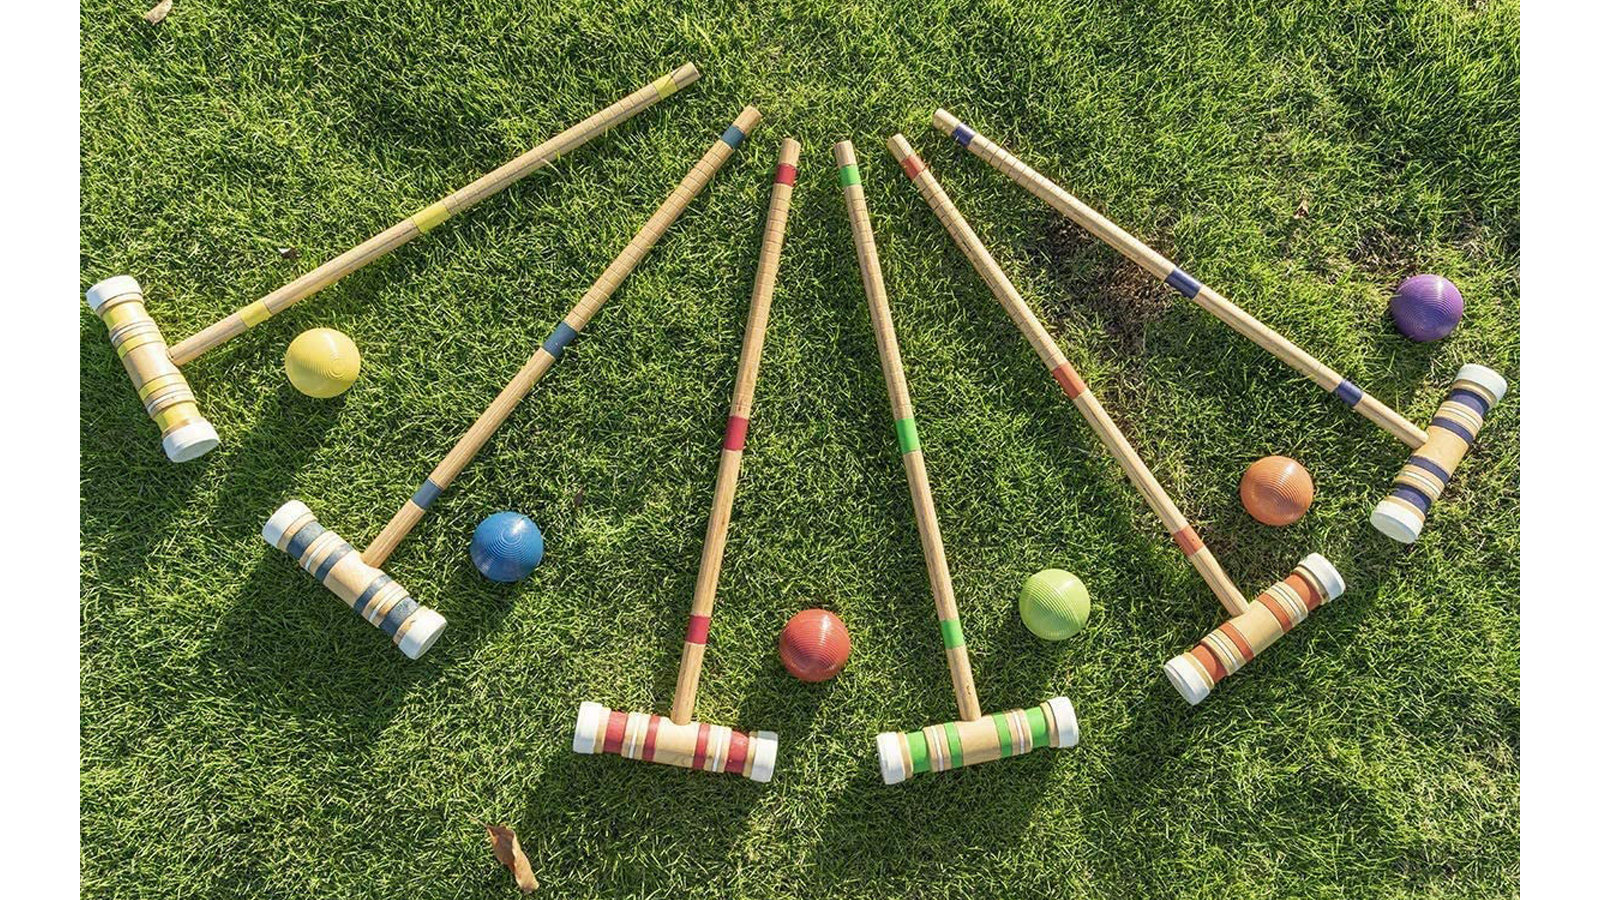 Croquet set with mallets, balls, wickets, and stakes